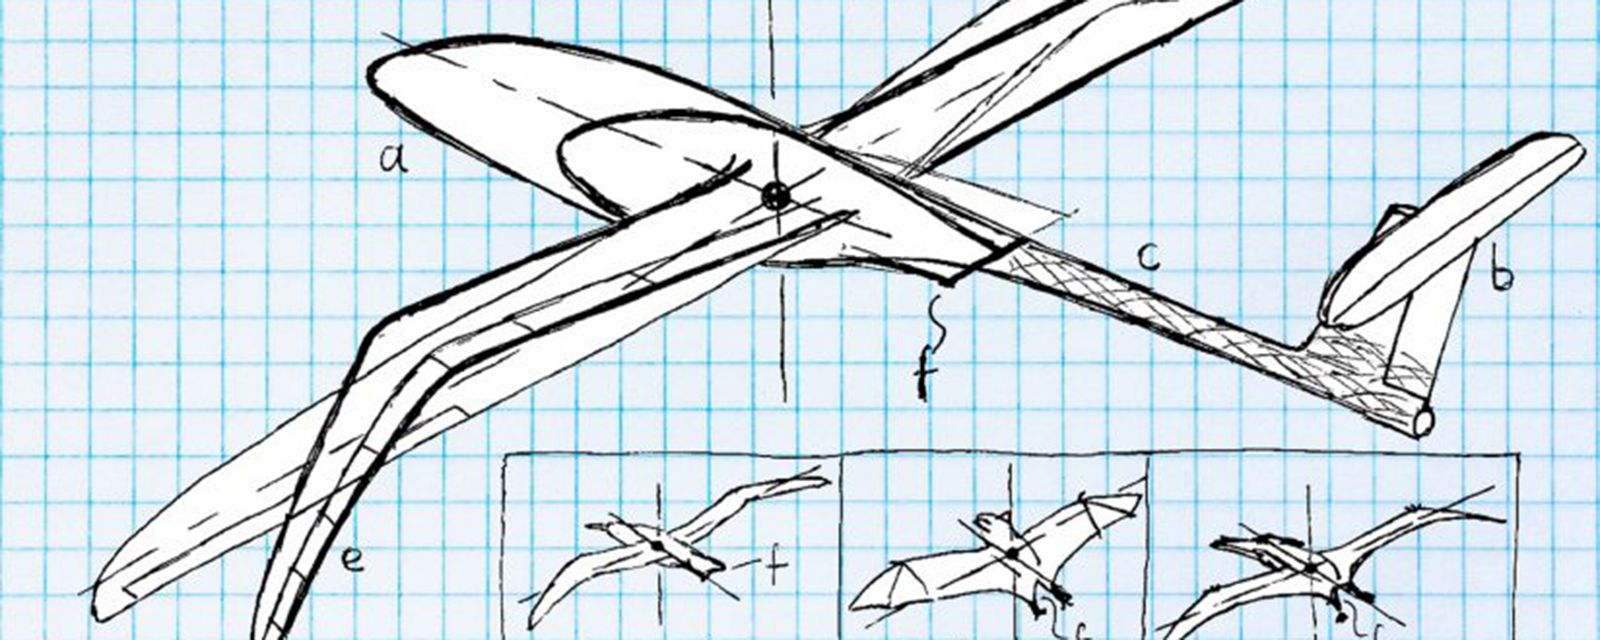 Illustration of a birdlike aircraft